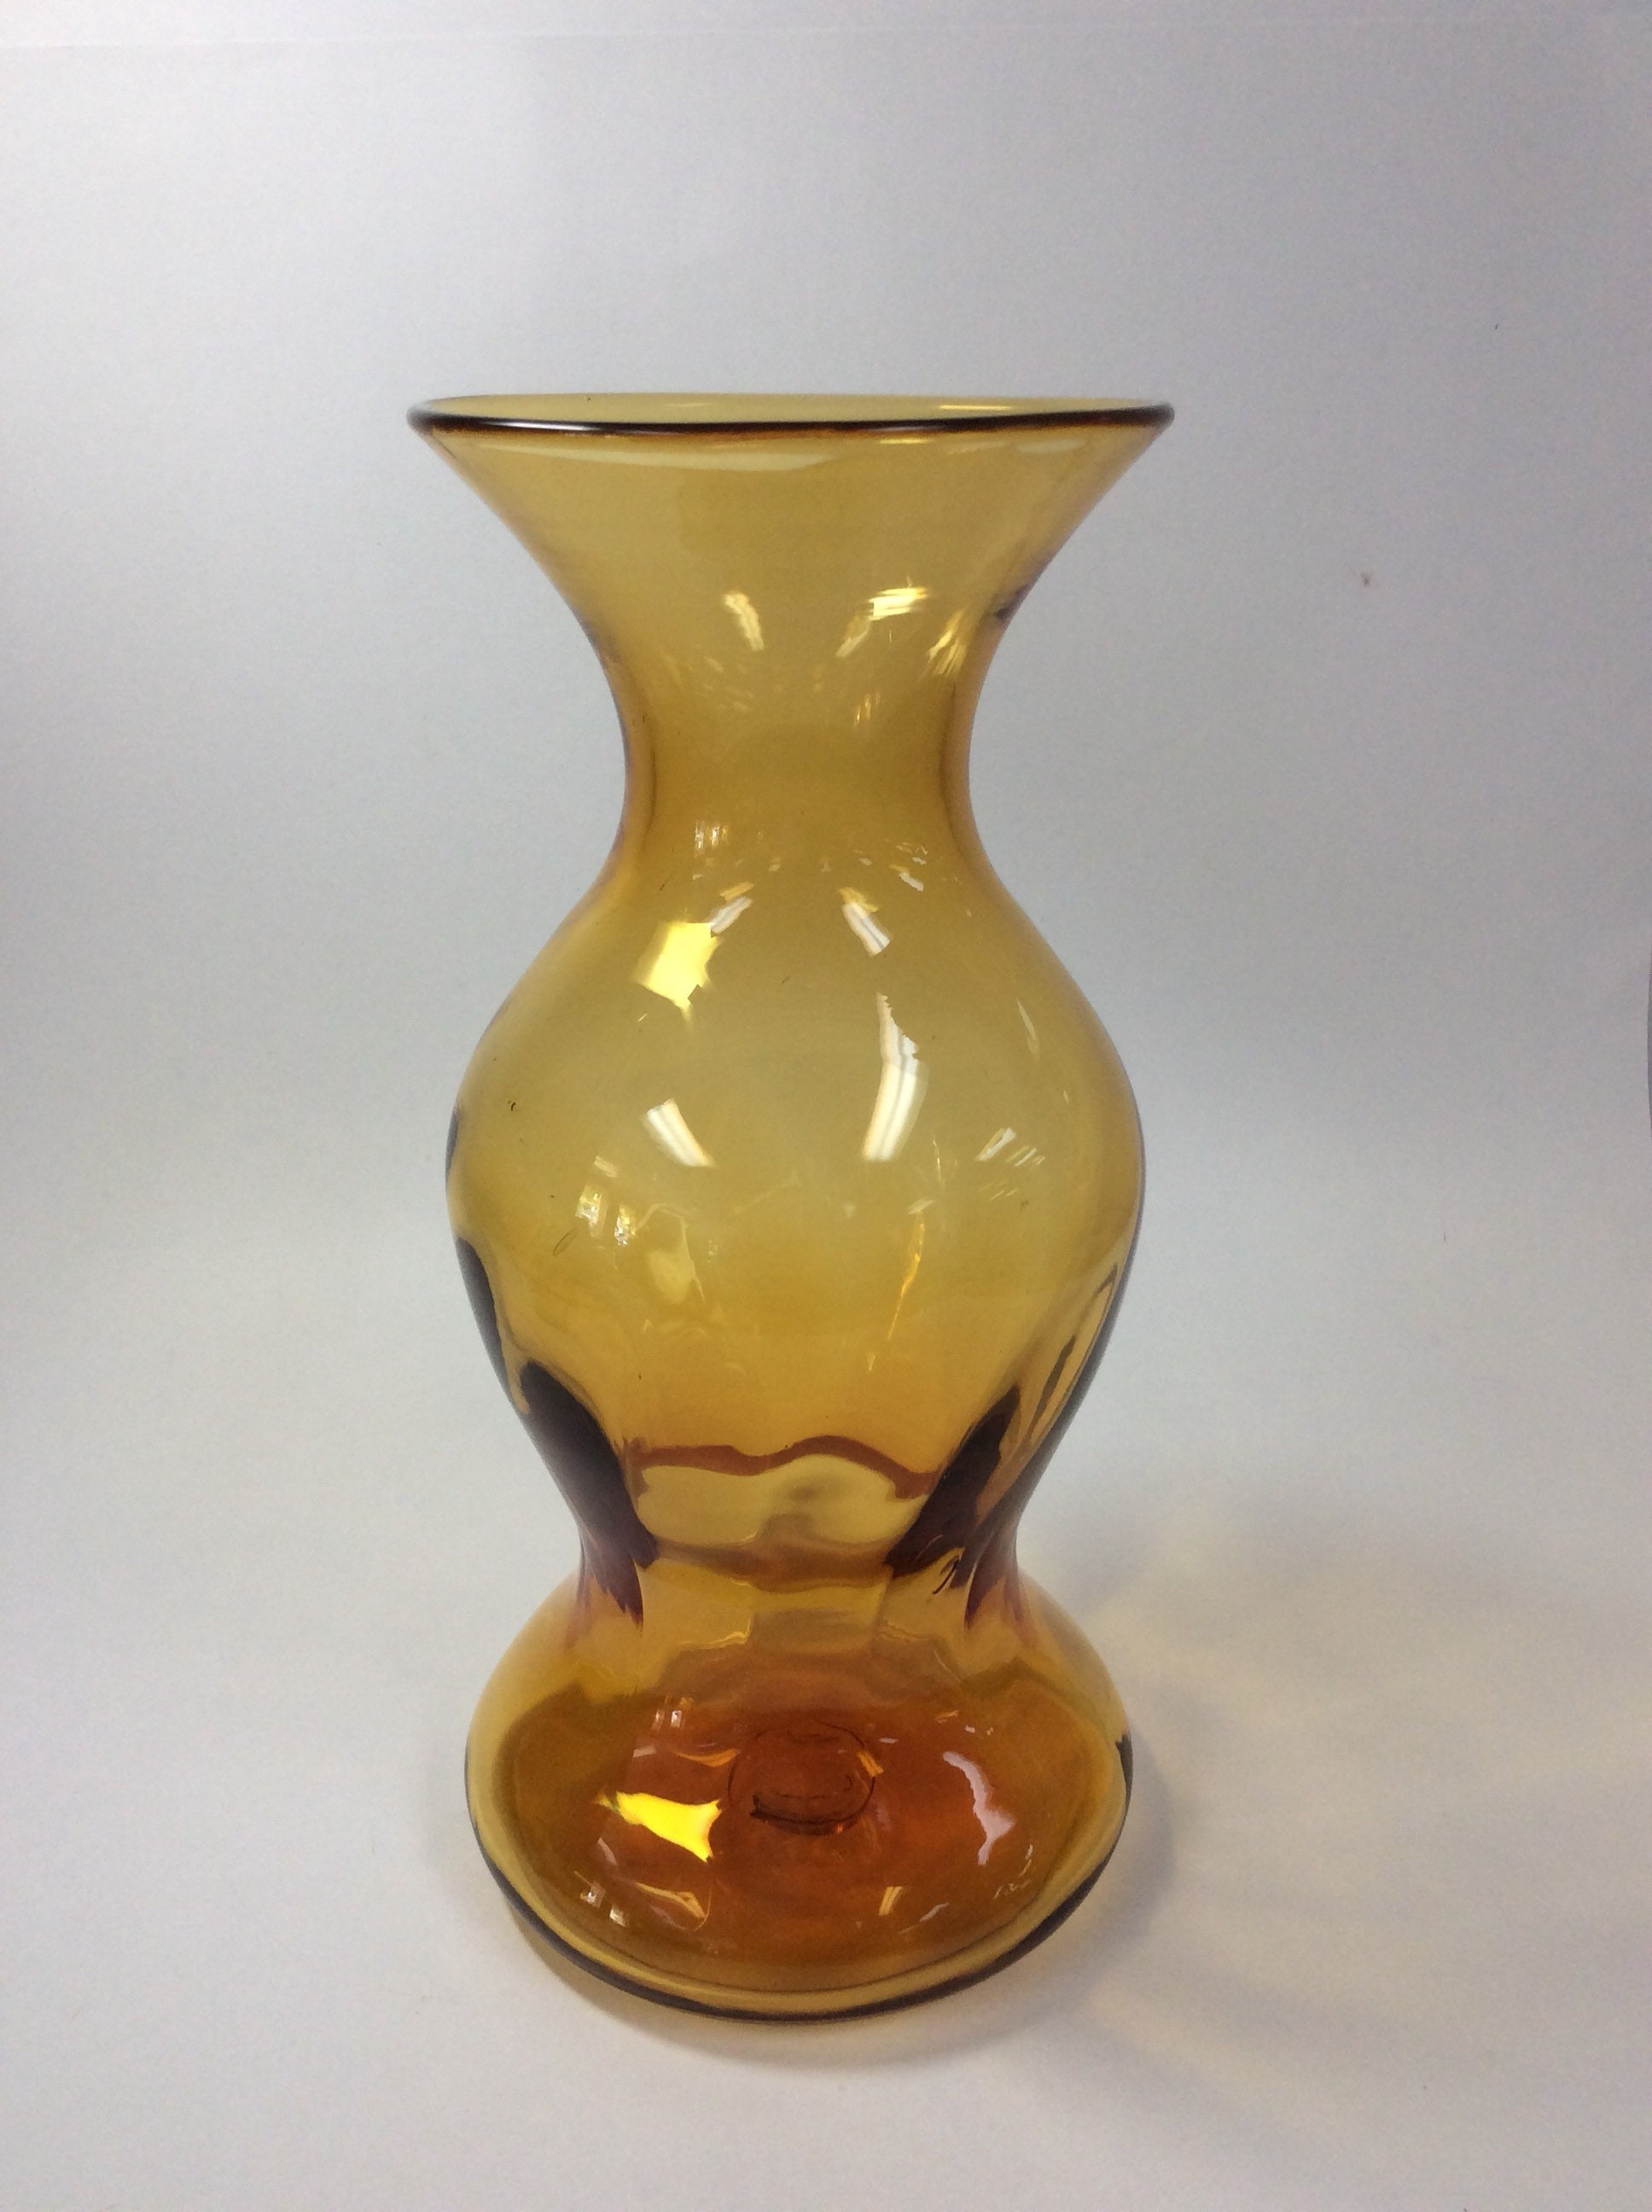 Blenko Gl 6810 hand blown optic vase wheat amber, Joel Myers on blenko bubble vase, blenko small vase, blenko handmade vase, blenko hourglass vase, blenko amber vase, blenko blue vase, blenko ruffled vase, blenko clear vase, blenko green vase, blenko 1957 19 1 2 vase, blenko amethyst vase, blenko tangerine vase,